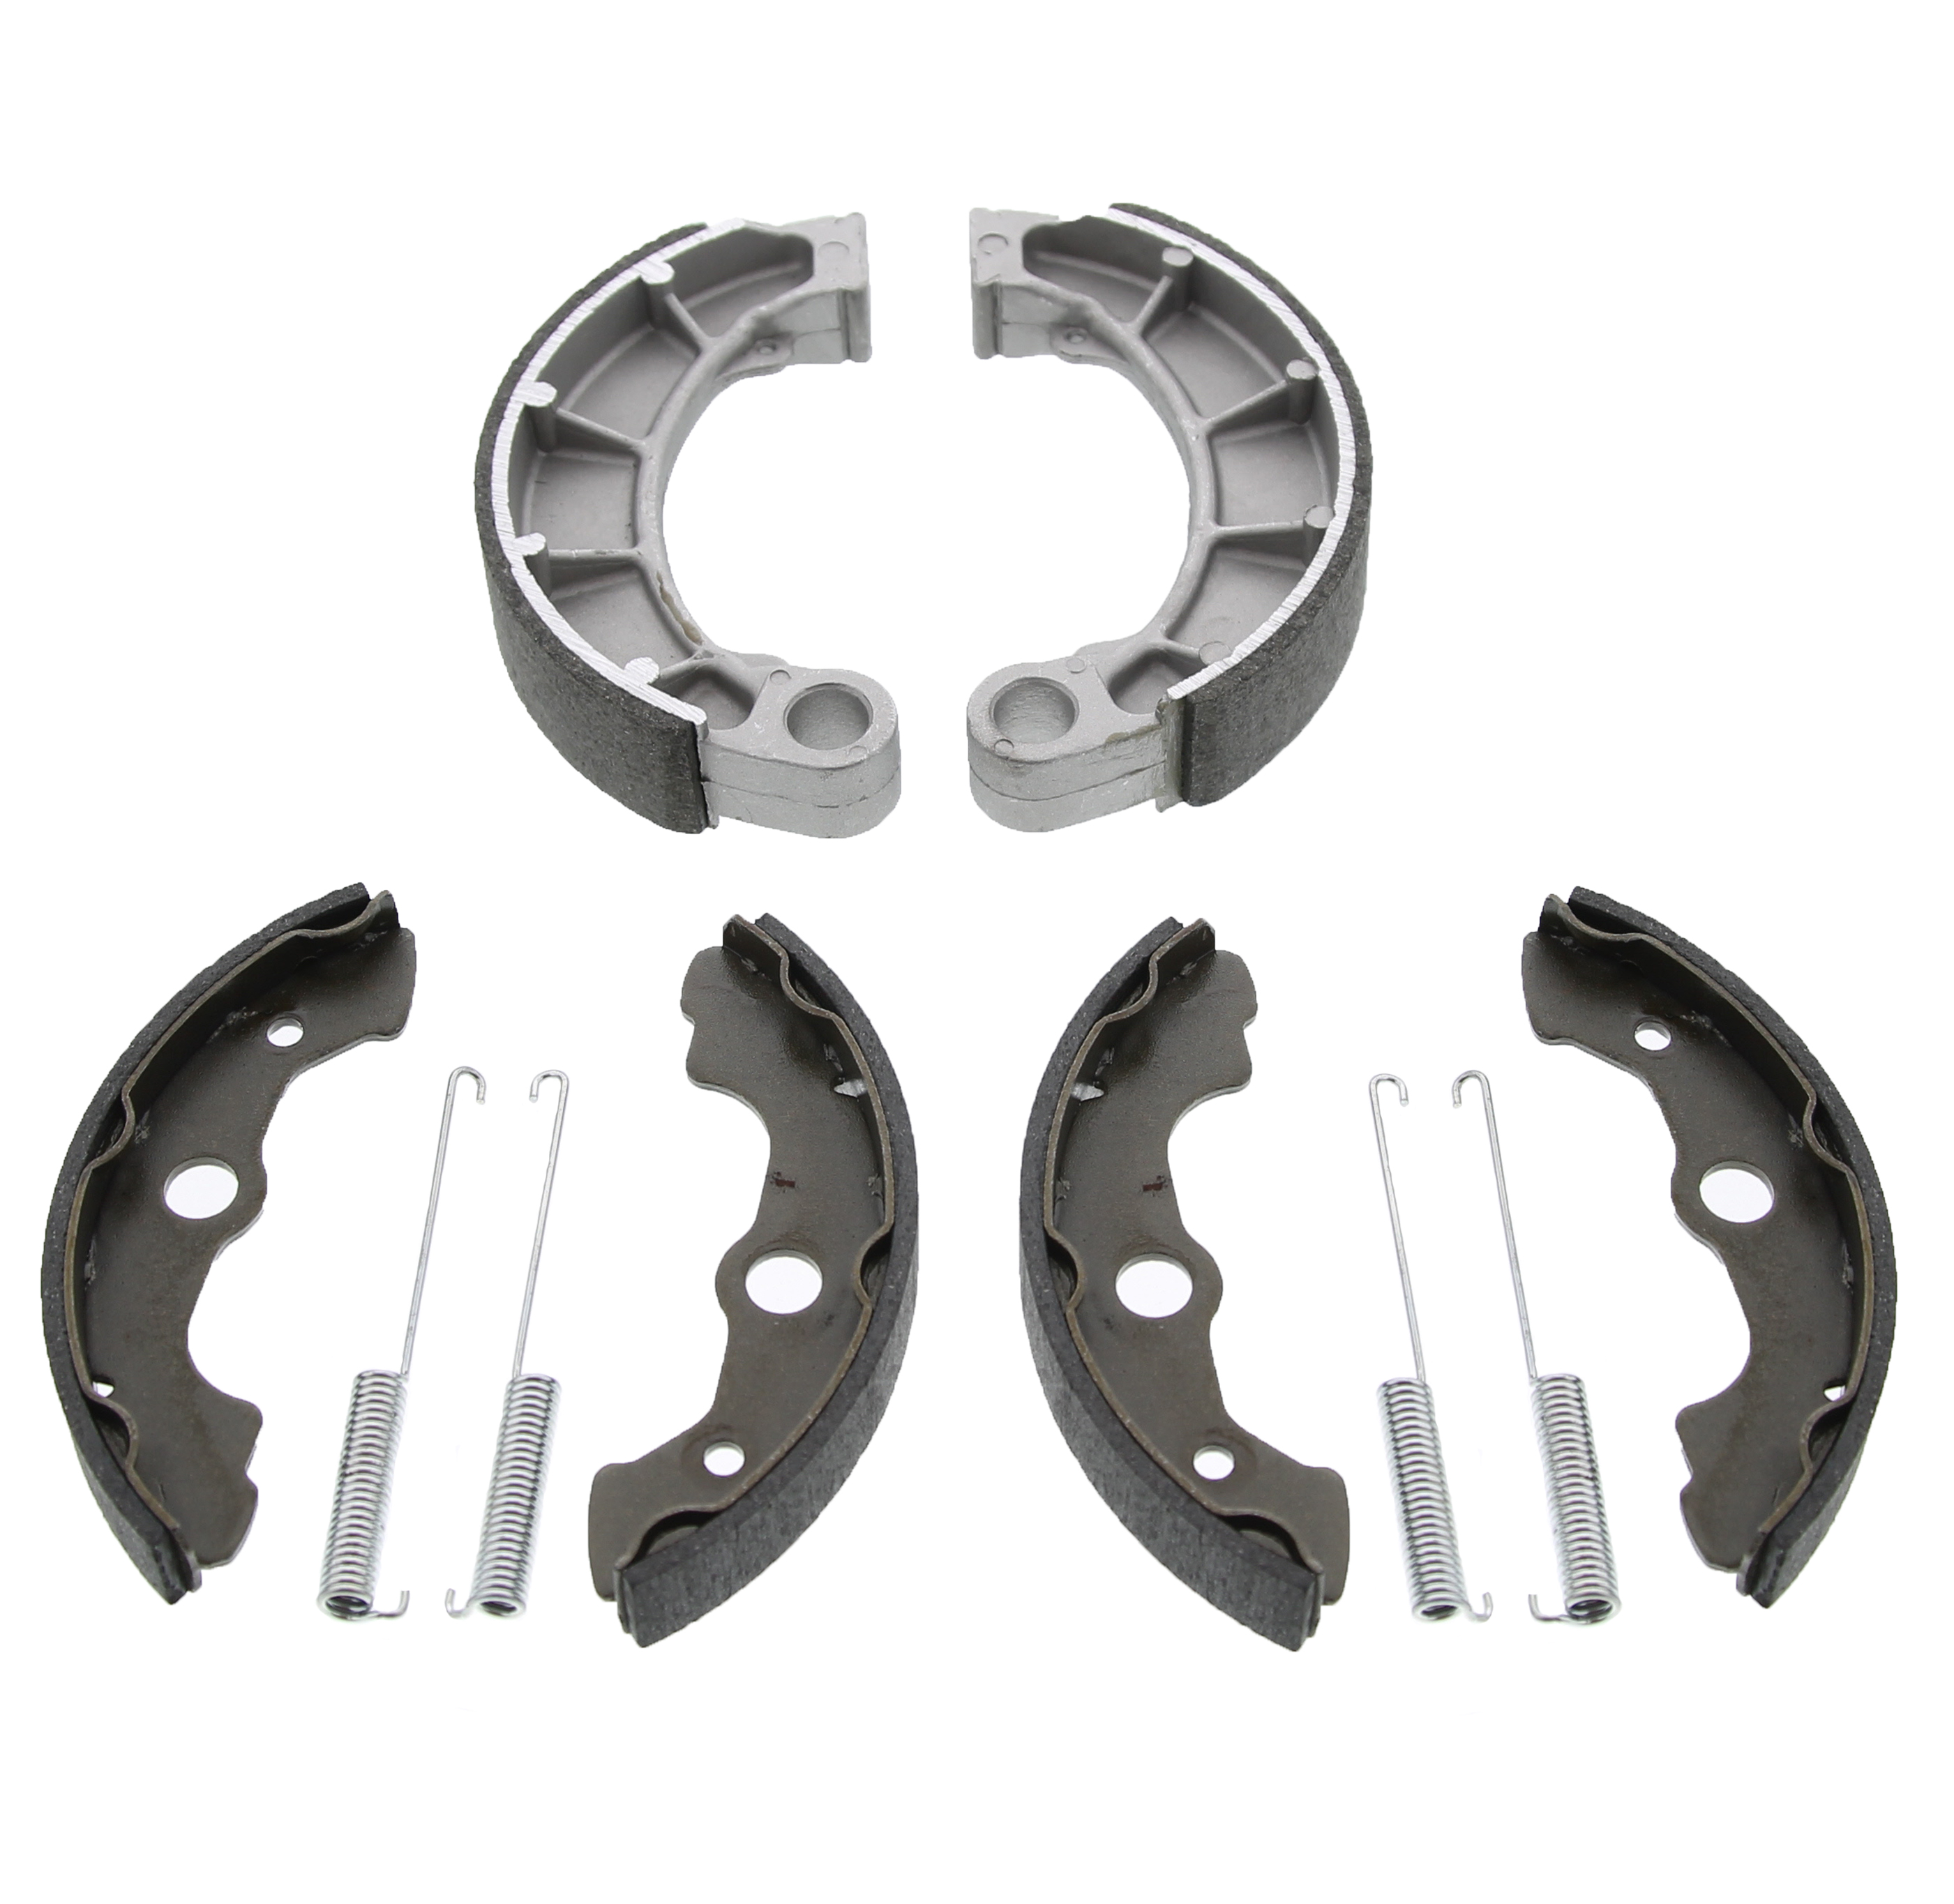 2000 Honda TRX350TM TRX350 350 Fourtrax Rancher Front and Rear Brake Shoes by Race-Driven